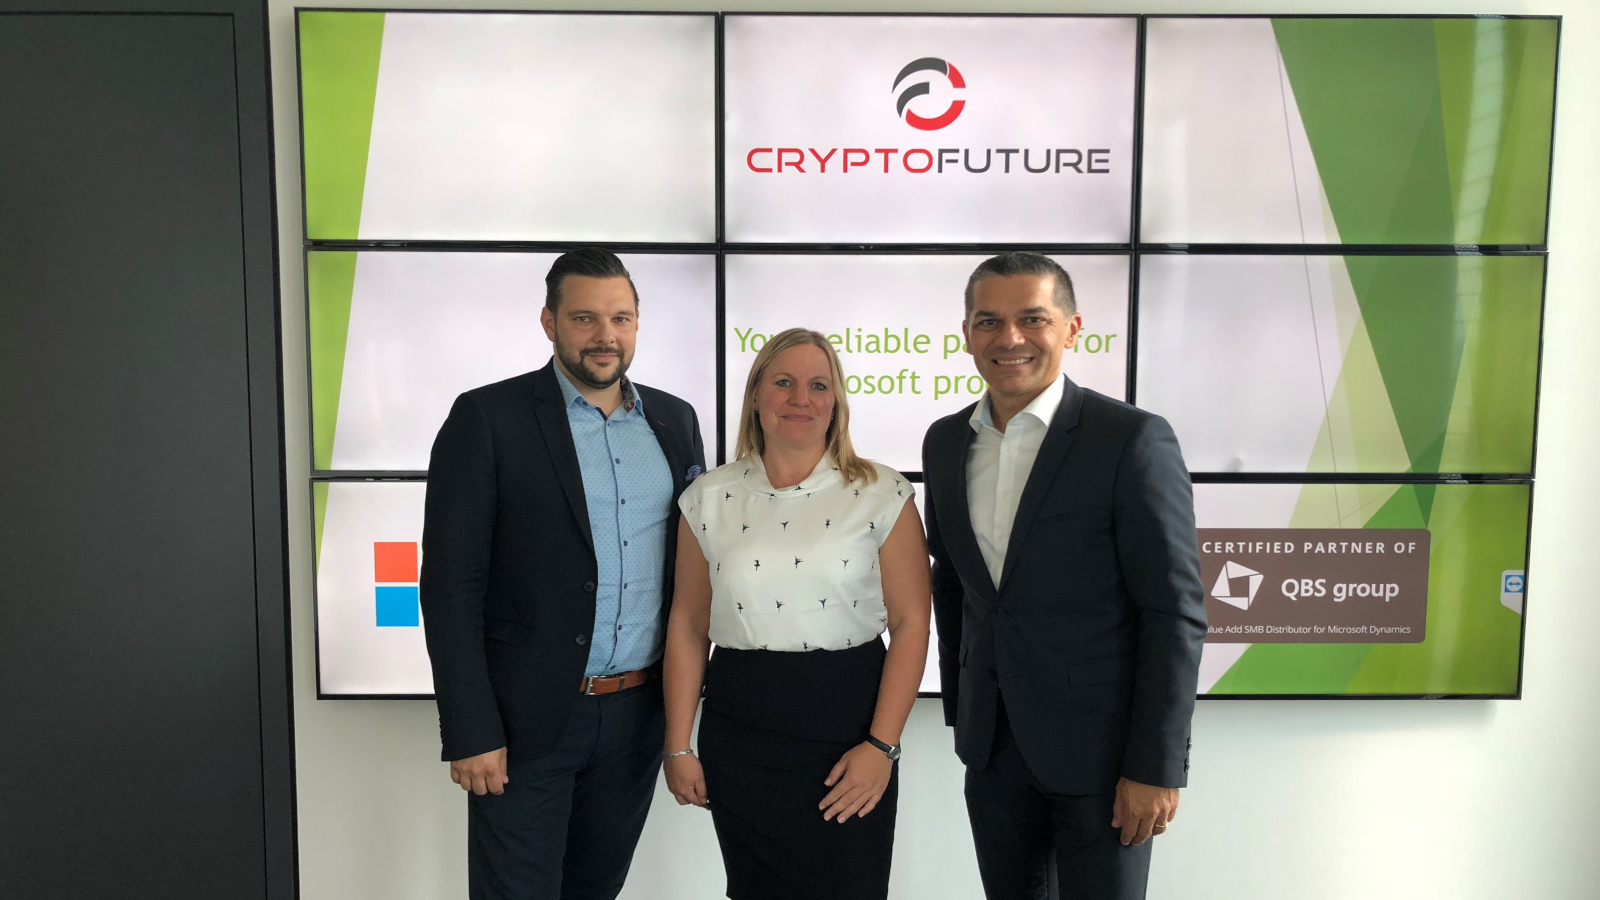 QBS visiting Crypto Future - strengthening our partnership!